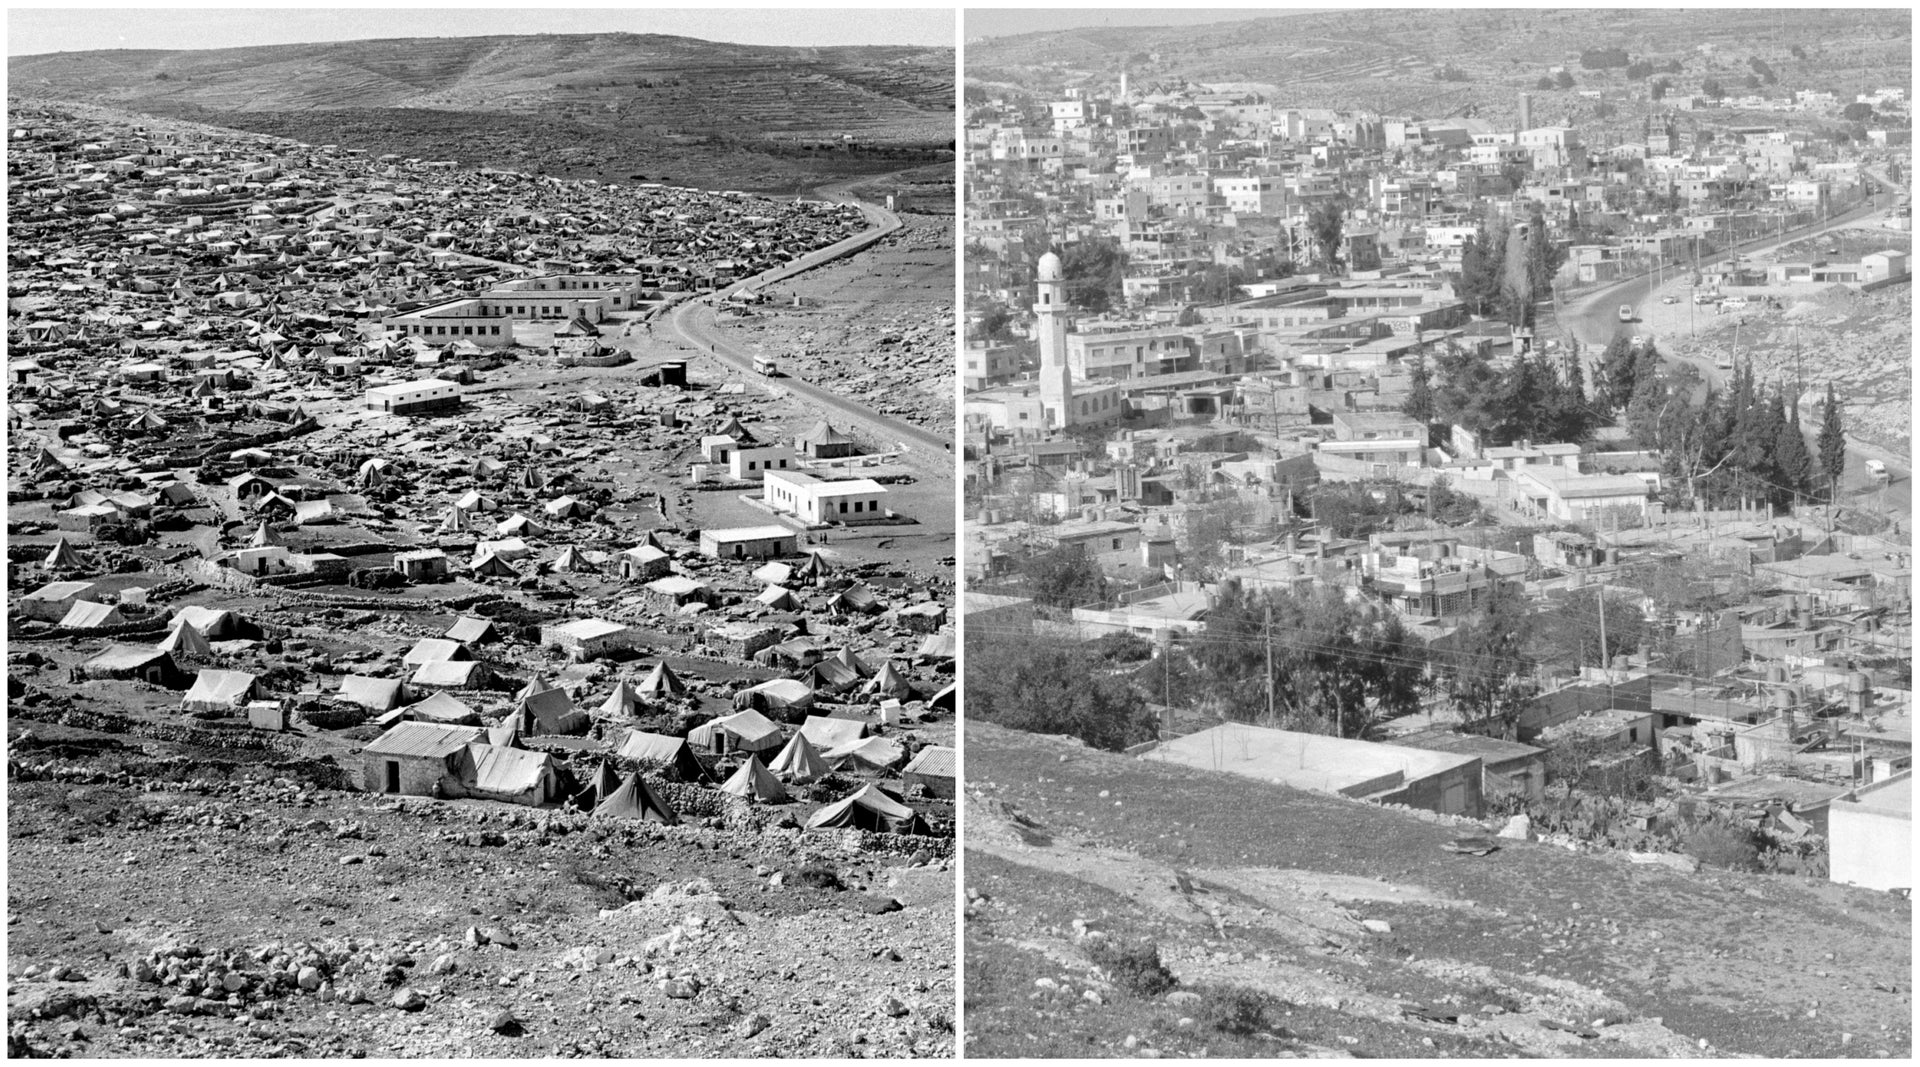 An undated photo of Deheisheh refugee camp in the West Bank after the 1948 Arab-Israeli war, left, and more built-up in 1989.